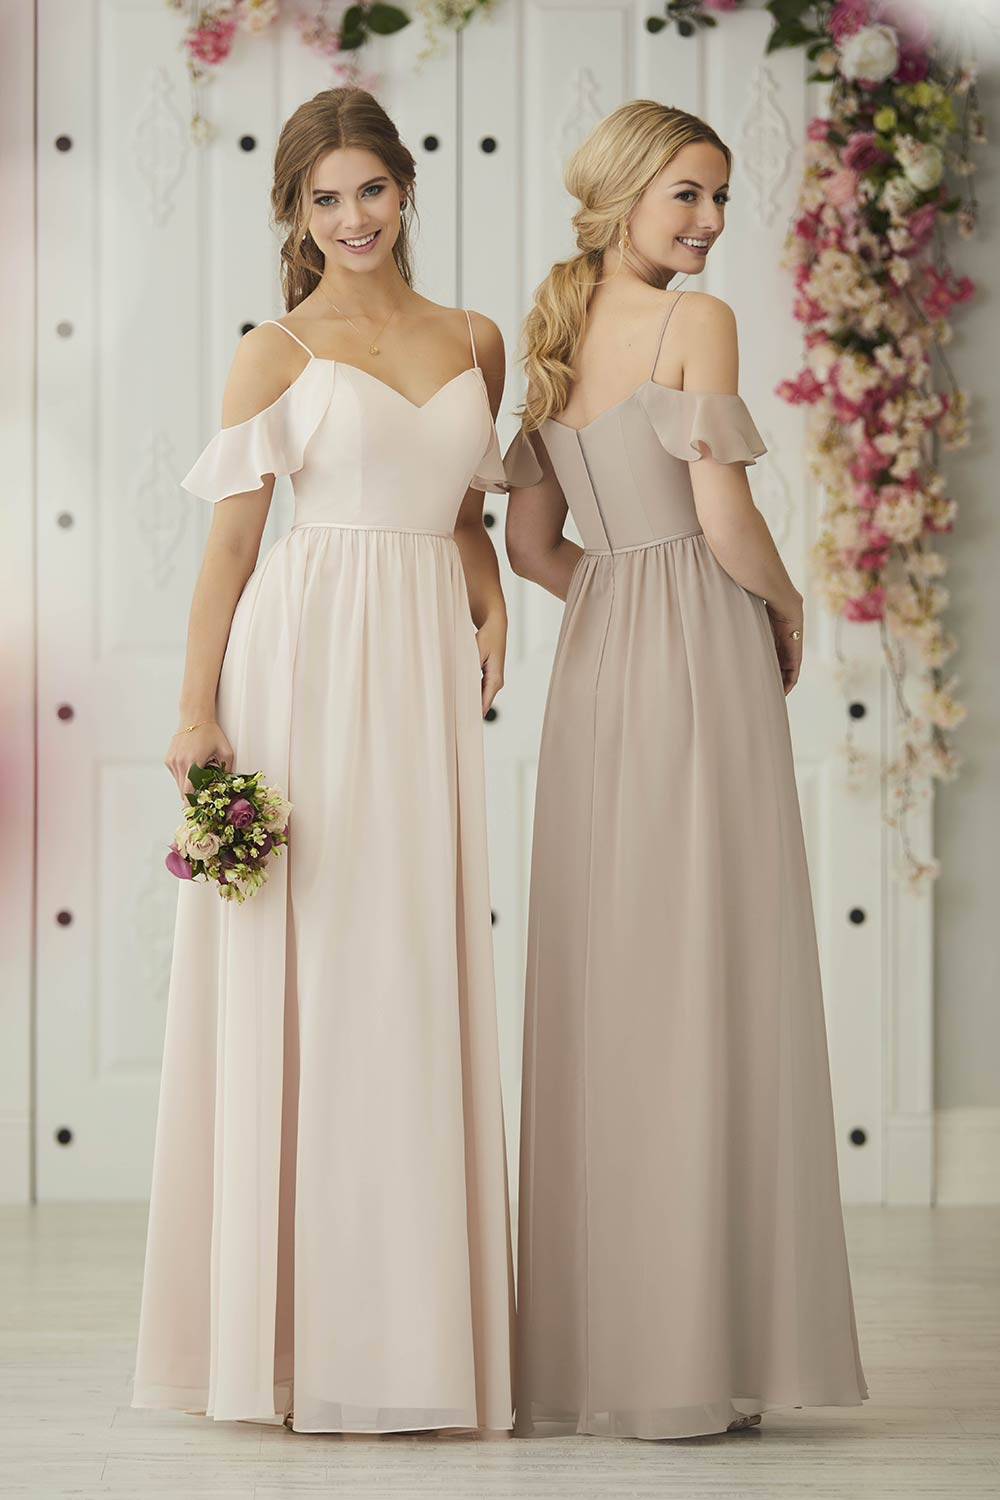 bridesmaid-dresses-jacquelin-bridals-canada-27285